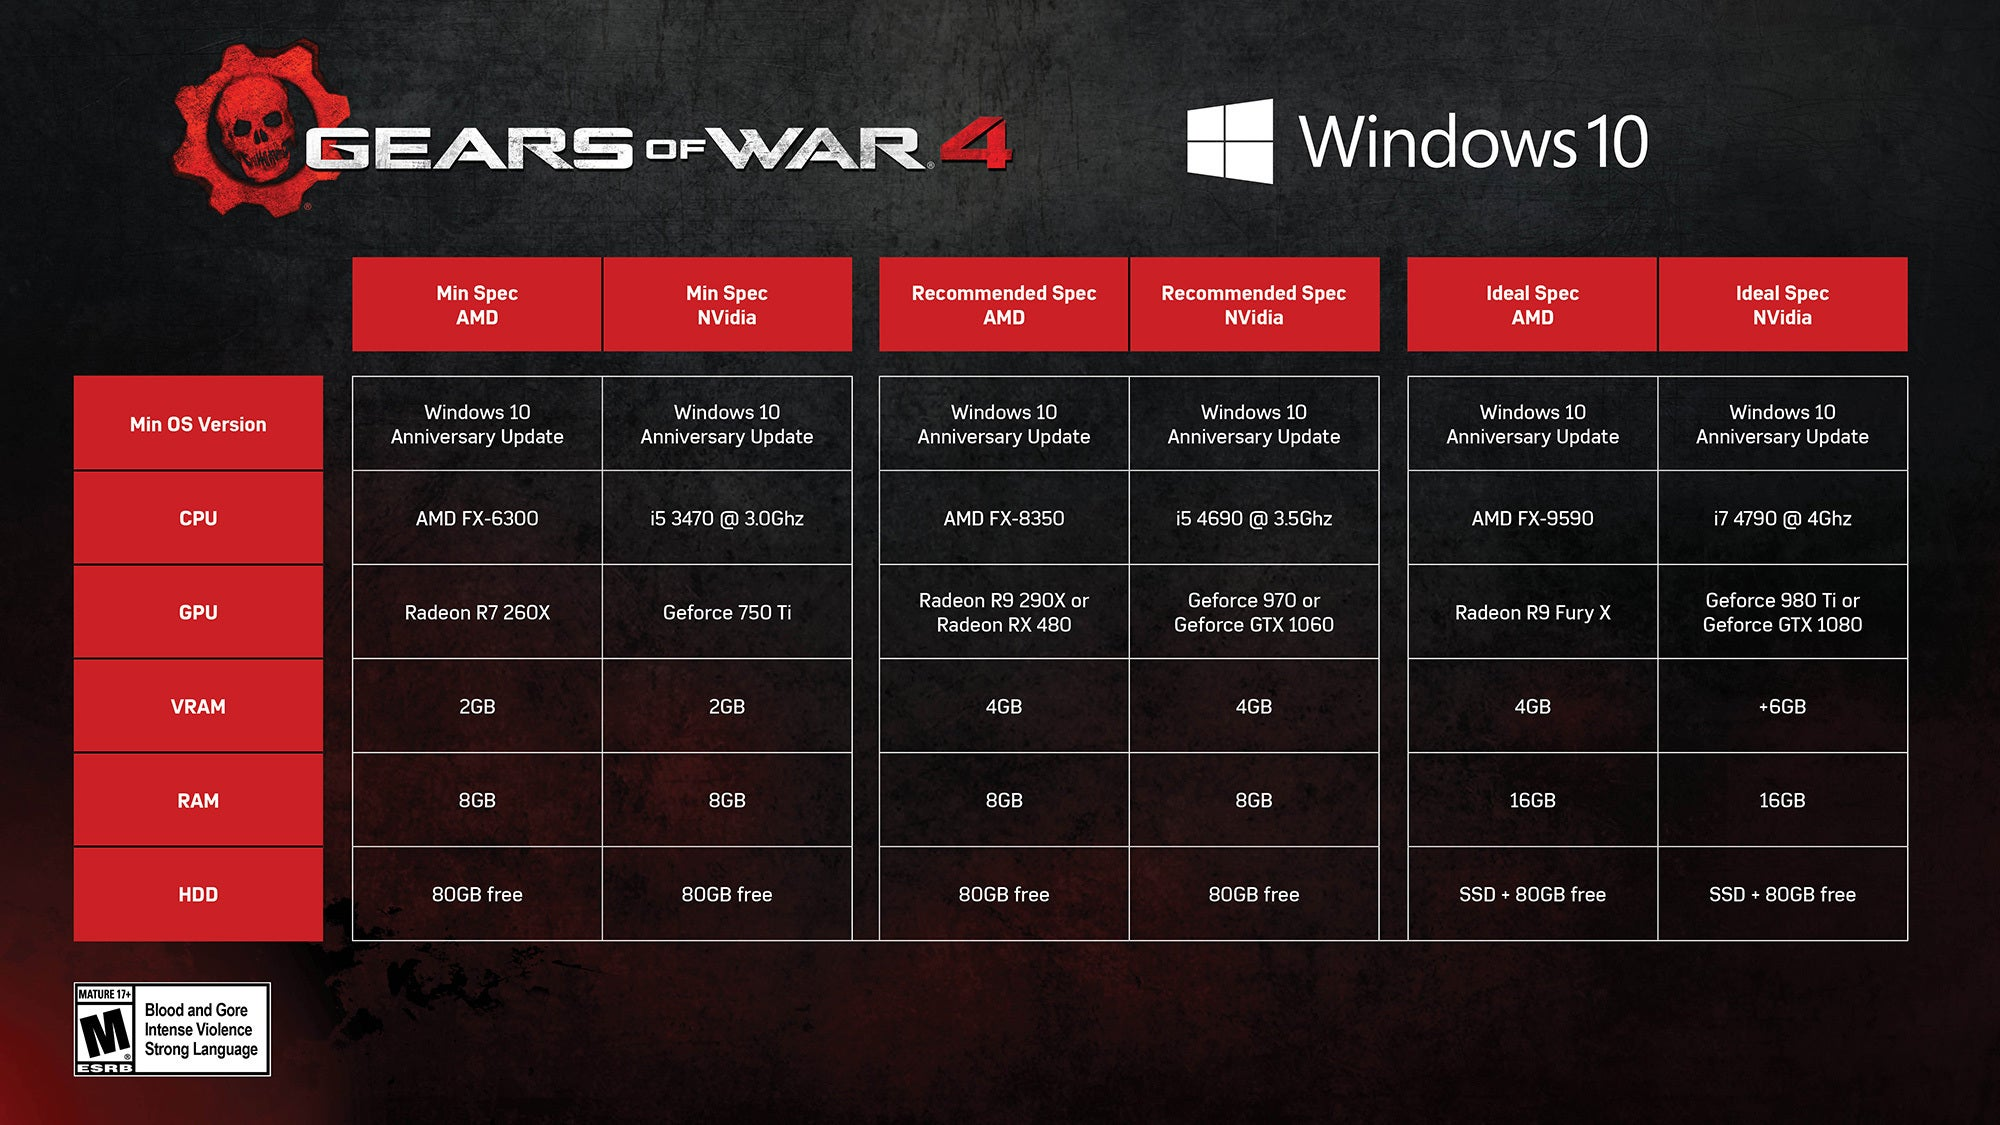 Gears of War 4 PC benchmark performance tested | PCWorld